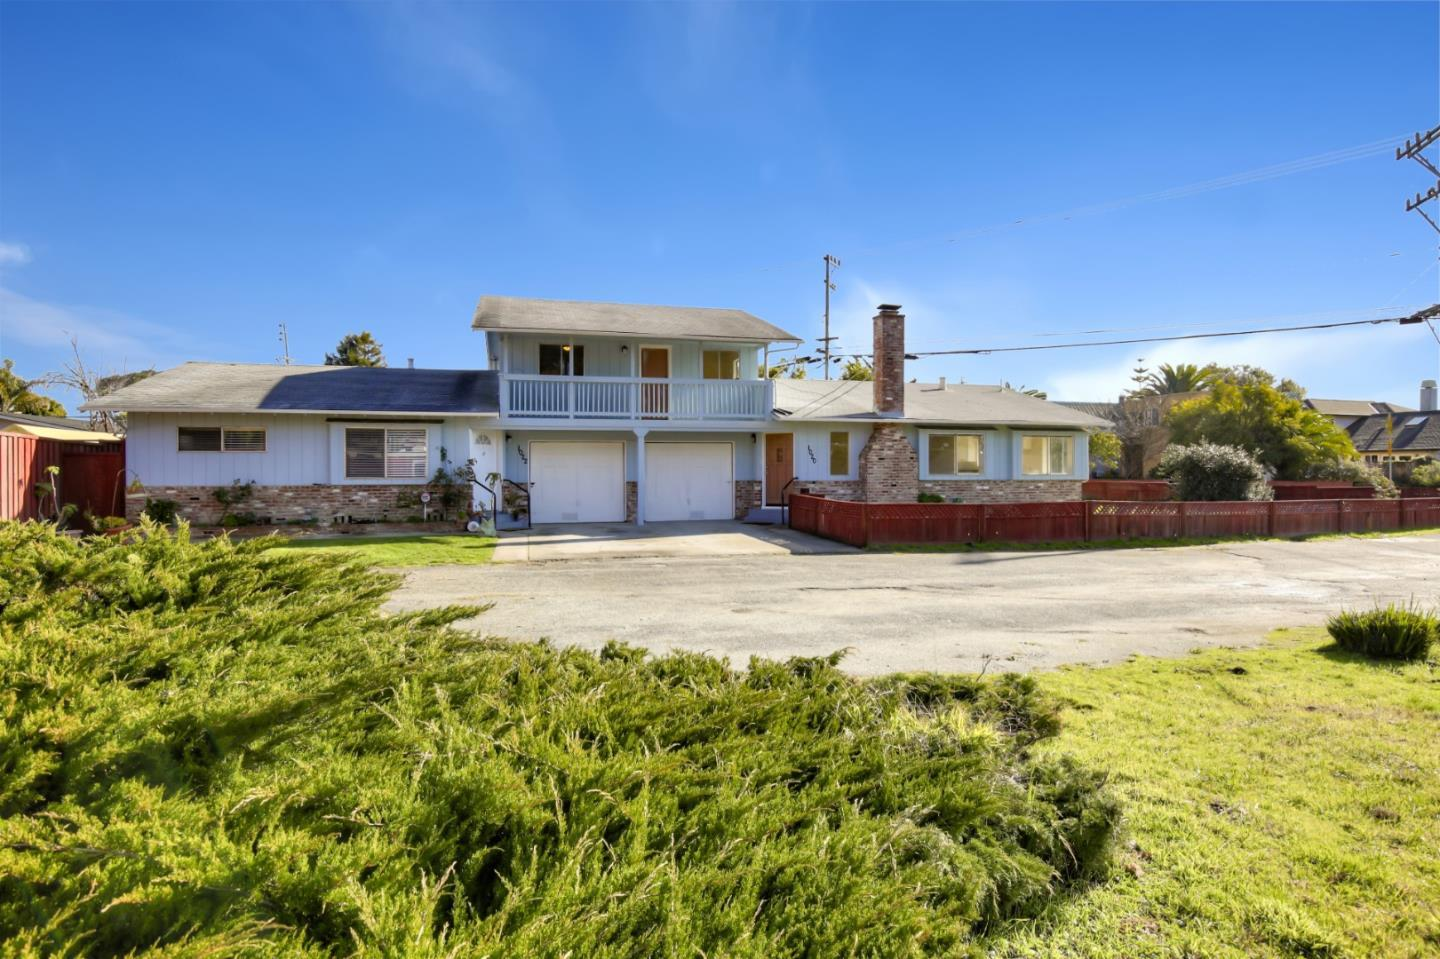 Back On Market! Desirable Pleasure Point / Live Oak / Capitola area duplex (2400+ sq. ft) situated on a large lot (12,500+ sq. ft) with beaches, surfing, parks, shopping, and dining all near-by. Only 3/4 mile to E. Cliff Drive and 41st Avenue. Unit at 1020 has 3 bedrooms (2 upstairs and one large downstairs) & 2 baths (1 downstairs) and has had recent updating. The darling Unit at 1022 has 2 bedrooms and 1 bath on a single level and is currently rented (tenants in this unit, do not disturb). Each unit has a single car garage with plenty of additional parking available. Both units include fenced yards. Each unit has separate gas  & electric meters. This property is truly a rare find and one that has so many options, possibilities, and opportunities.  This property has been in the same family for the past 38 years. Sewer Lateral inspections and repairs have been completed with County Approved Permit and paid by sellers. Buyers can view vacant unit while practicing social distancing.